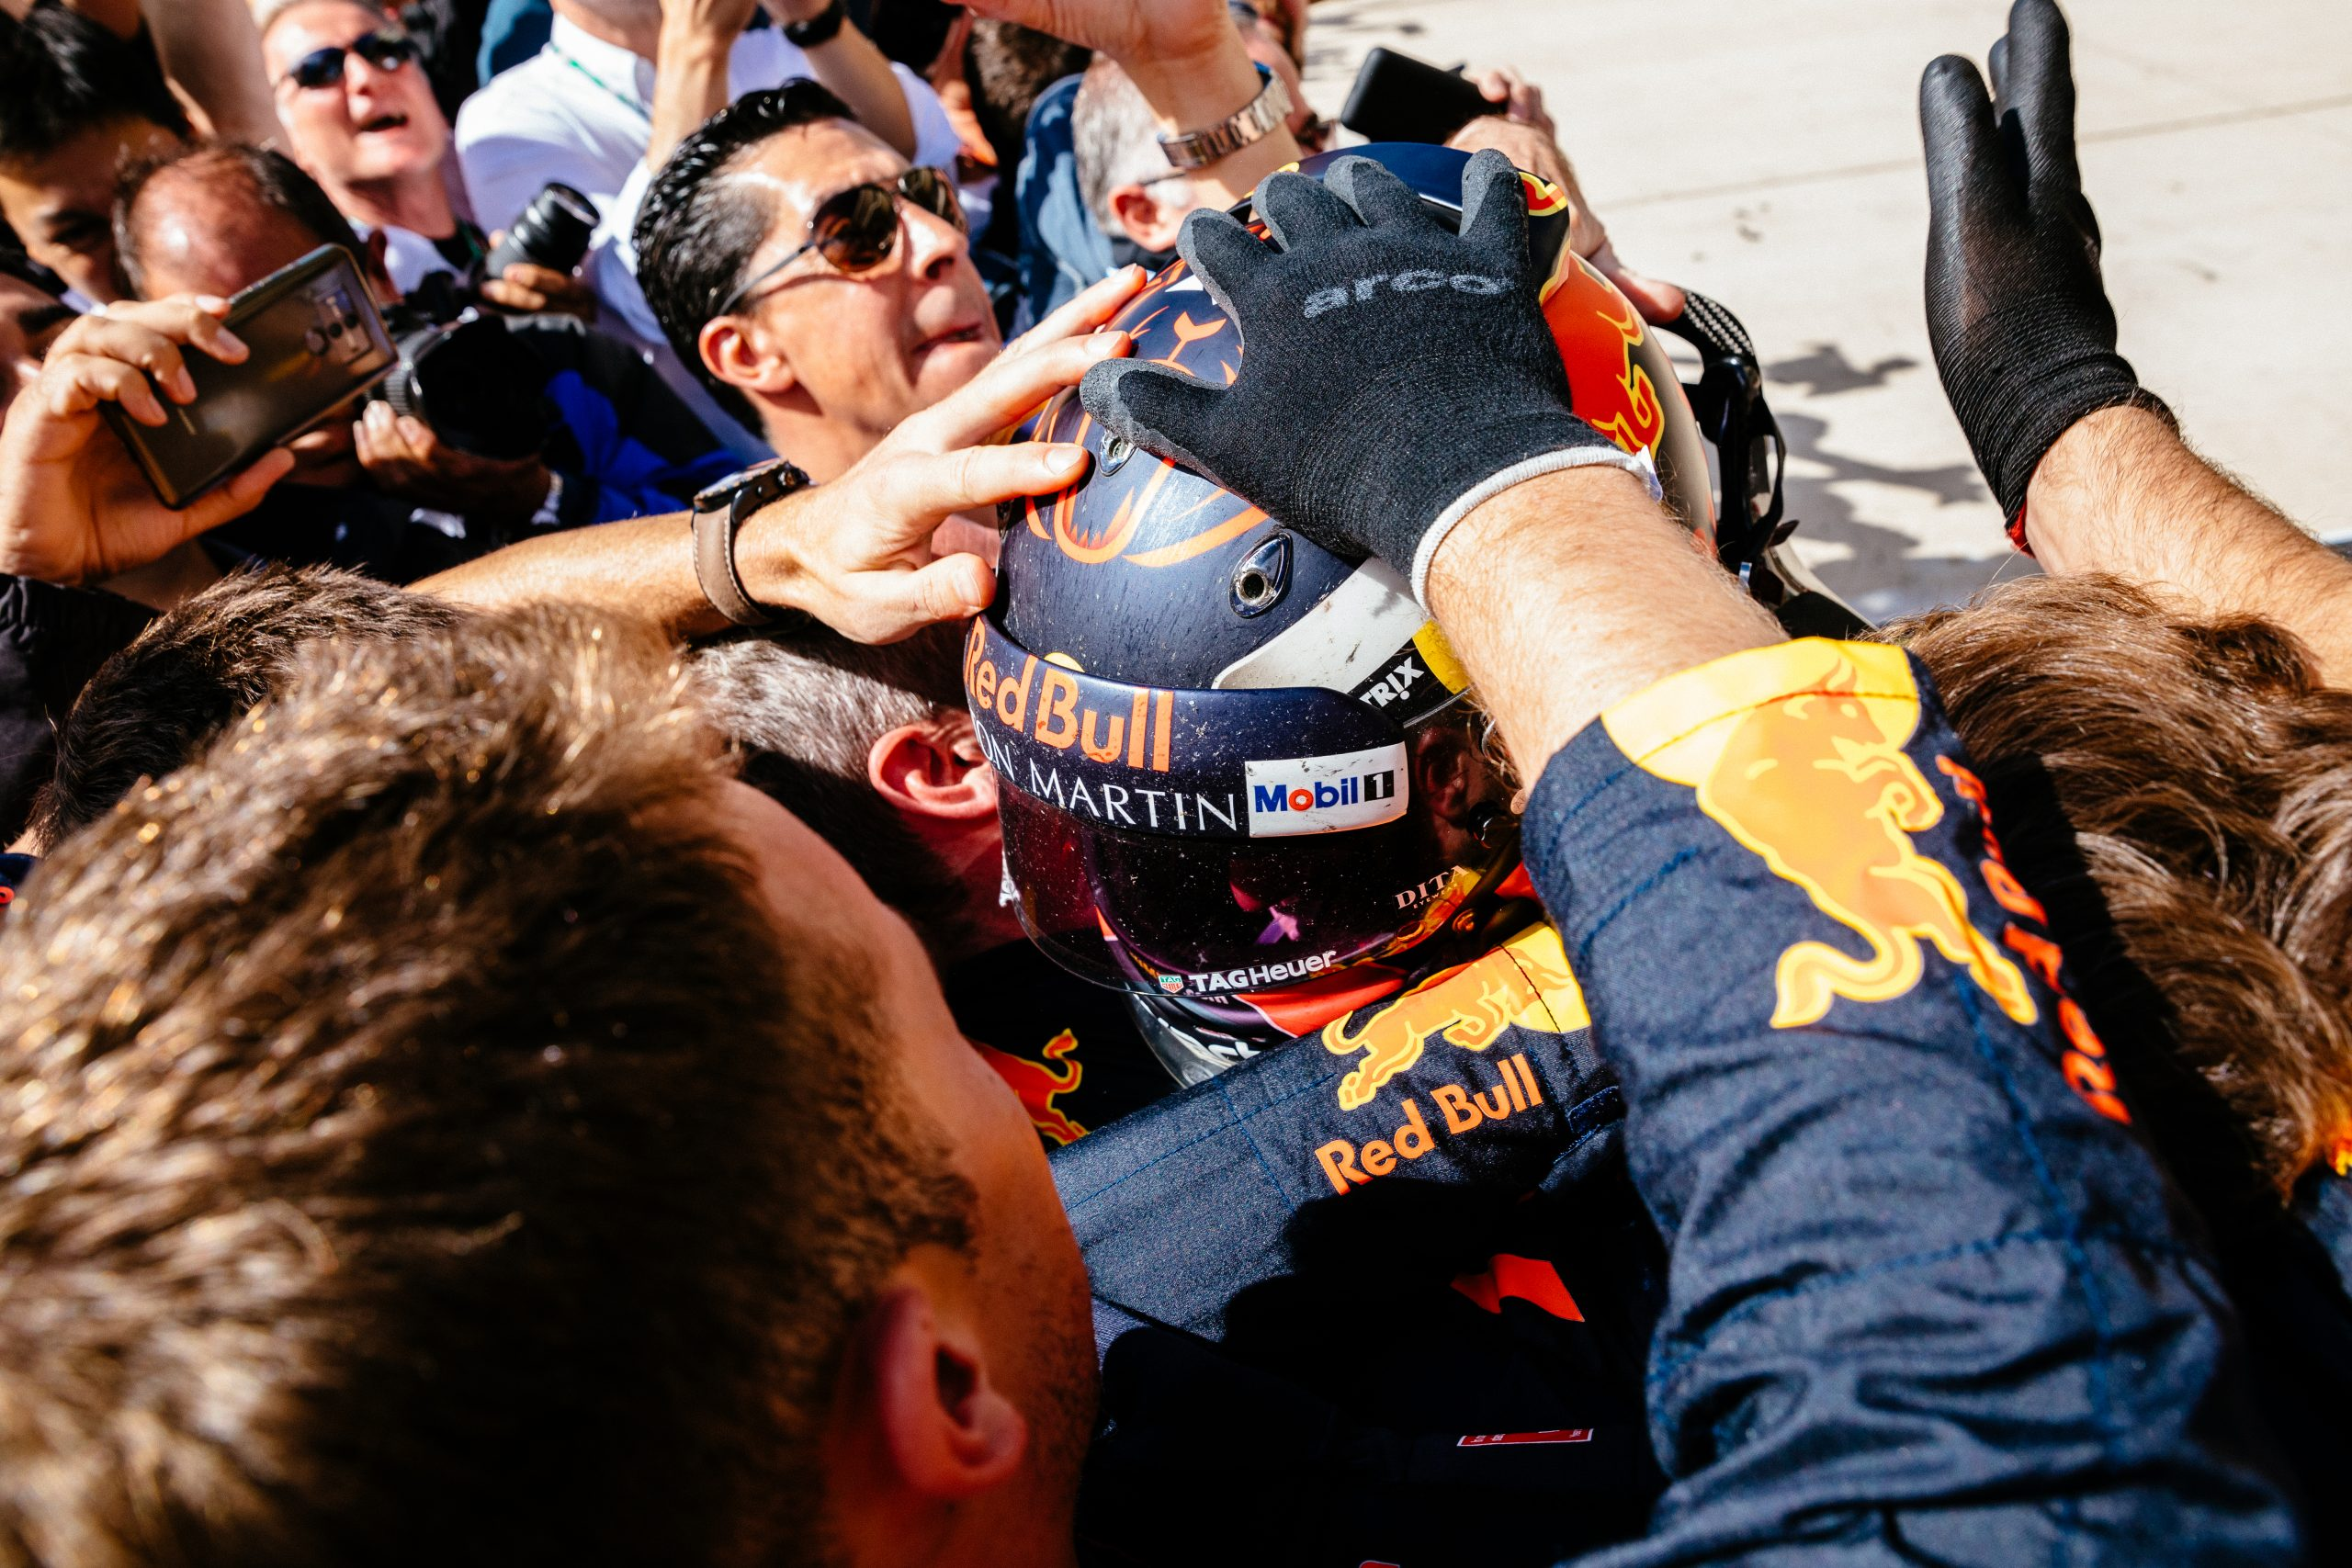 Max Verstappen celebrates with his team after a stellar drive from 18th to 2nd, something extremely rare in Formula 1.